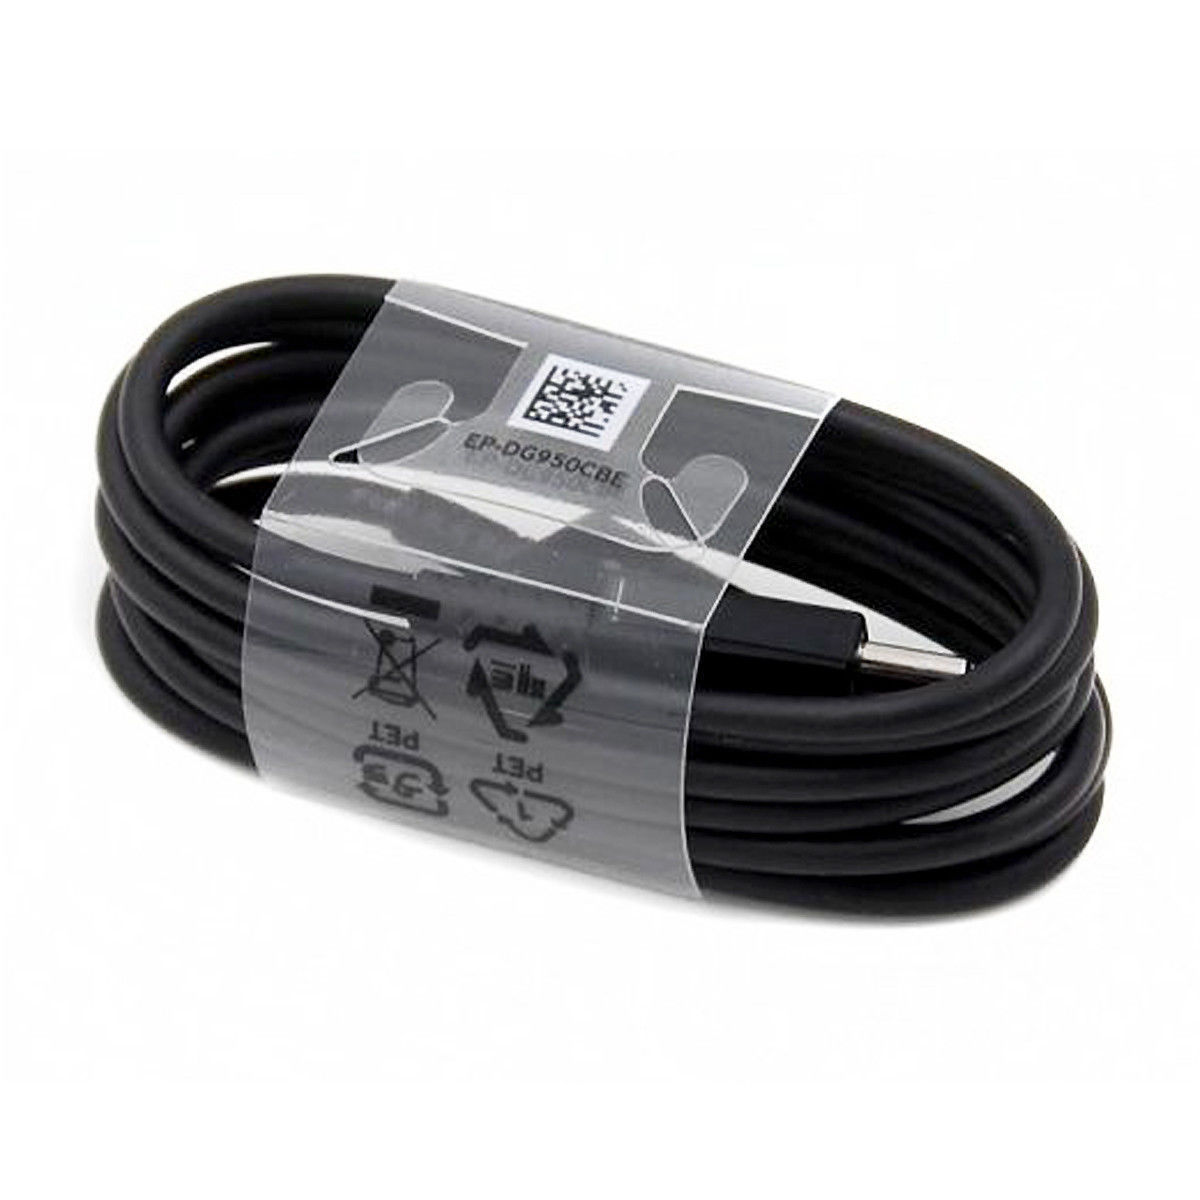 1x Type-C Cable